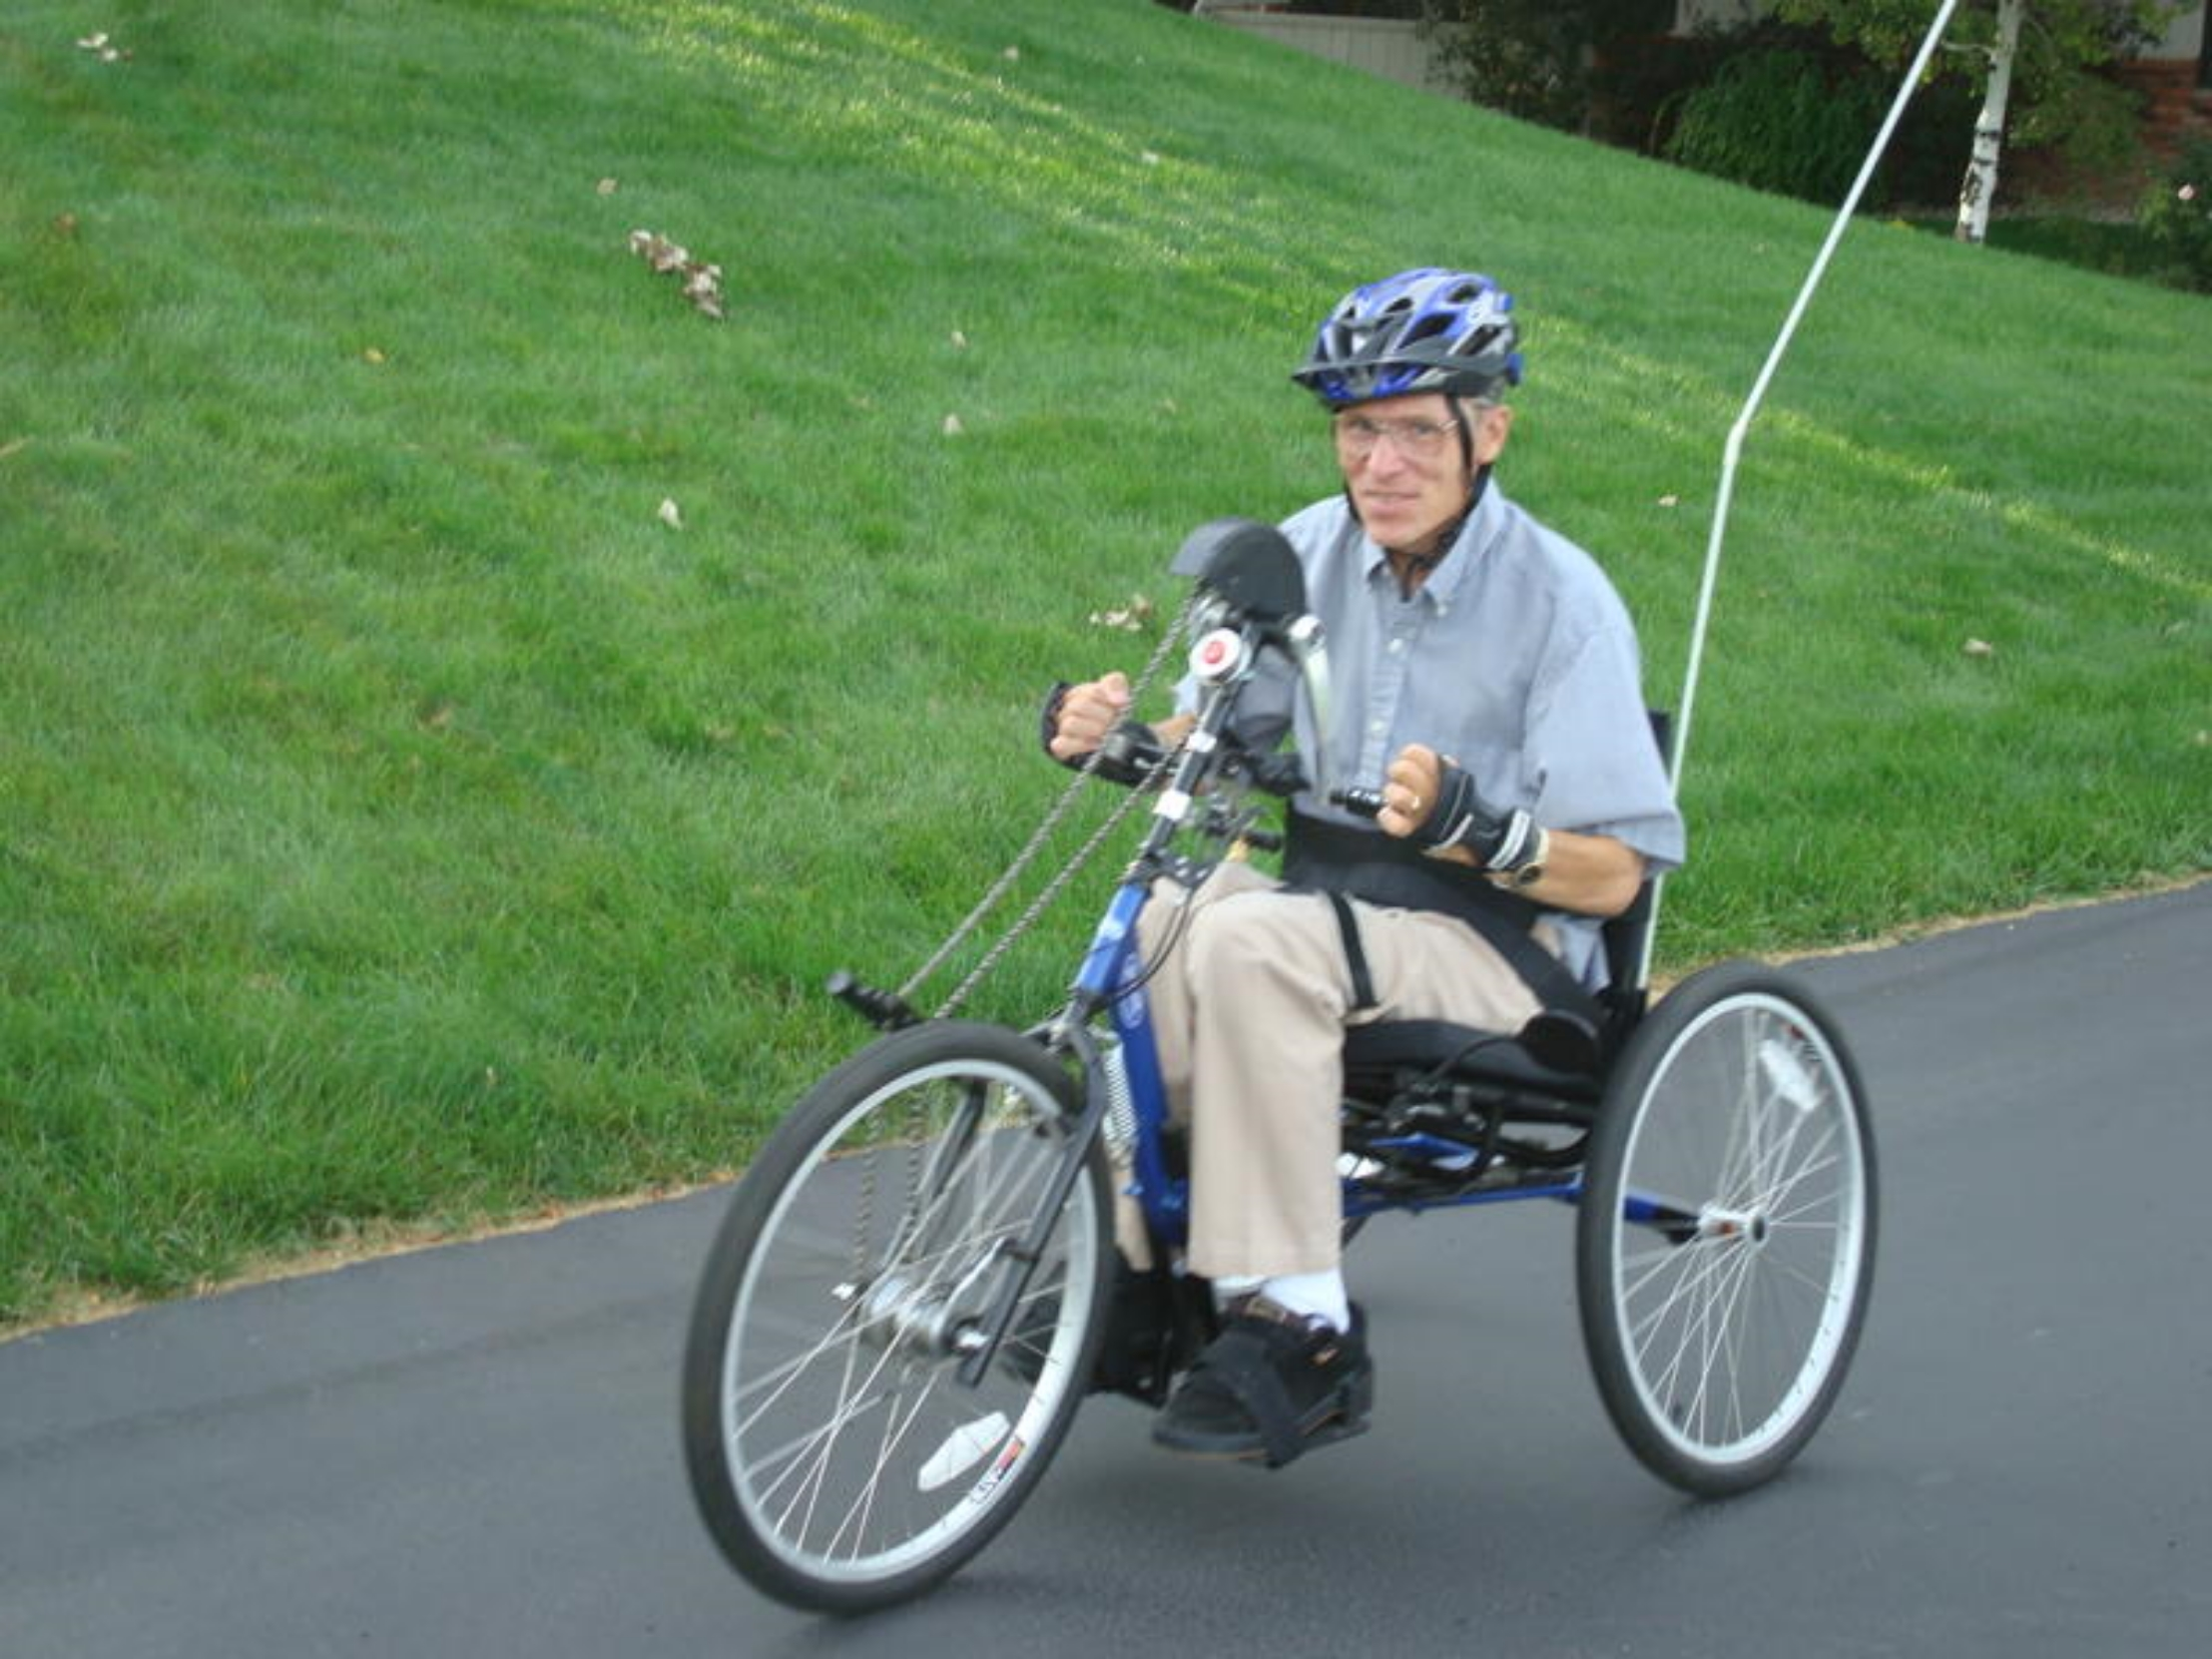 Individual that had a C3/C4 spinal cord injury enjoying a ride on his adaptive bicycle.